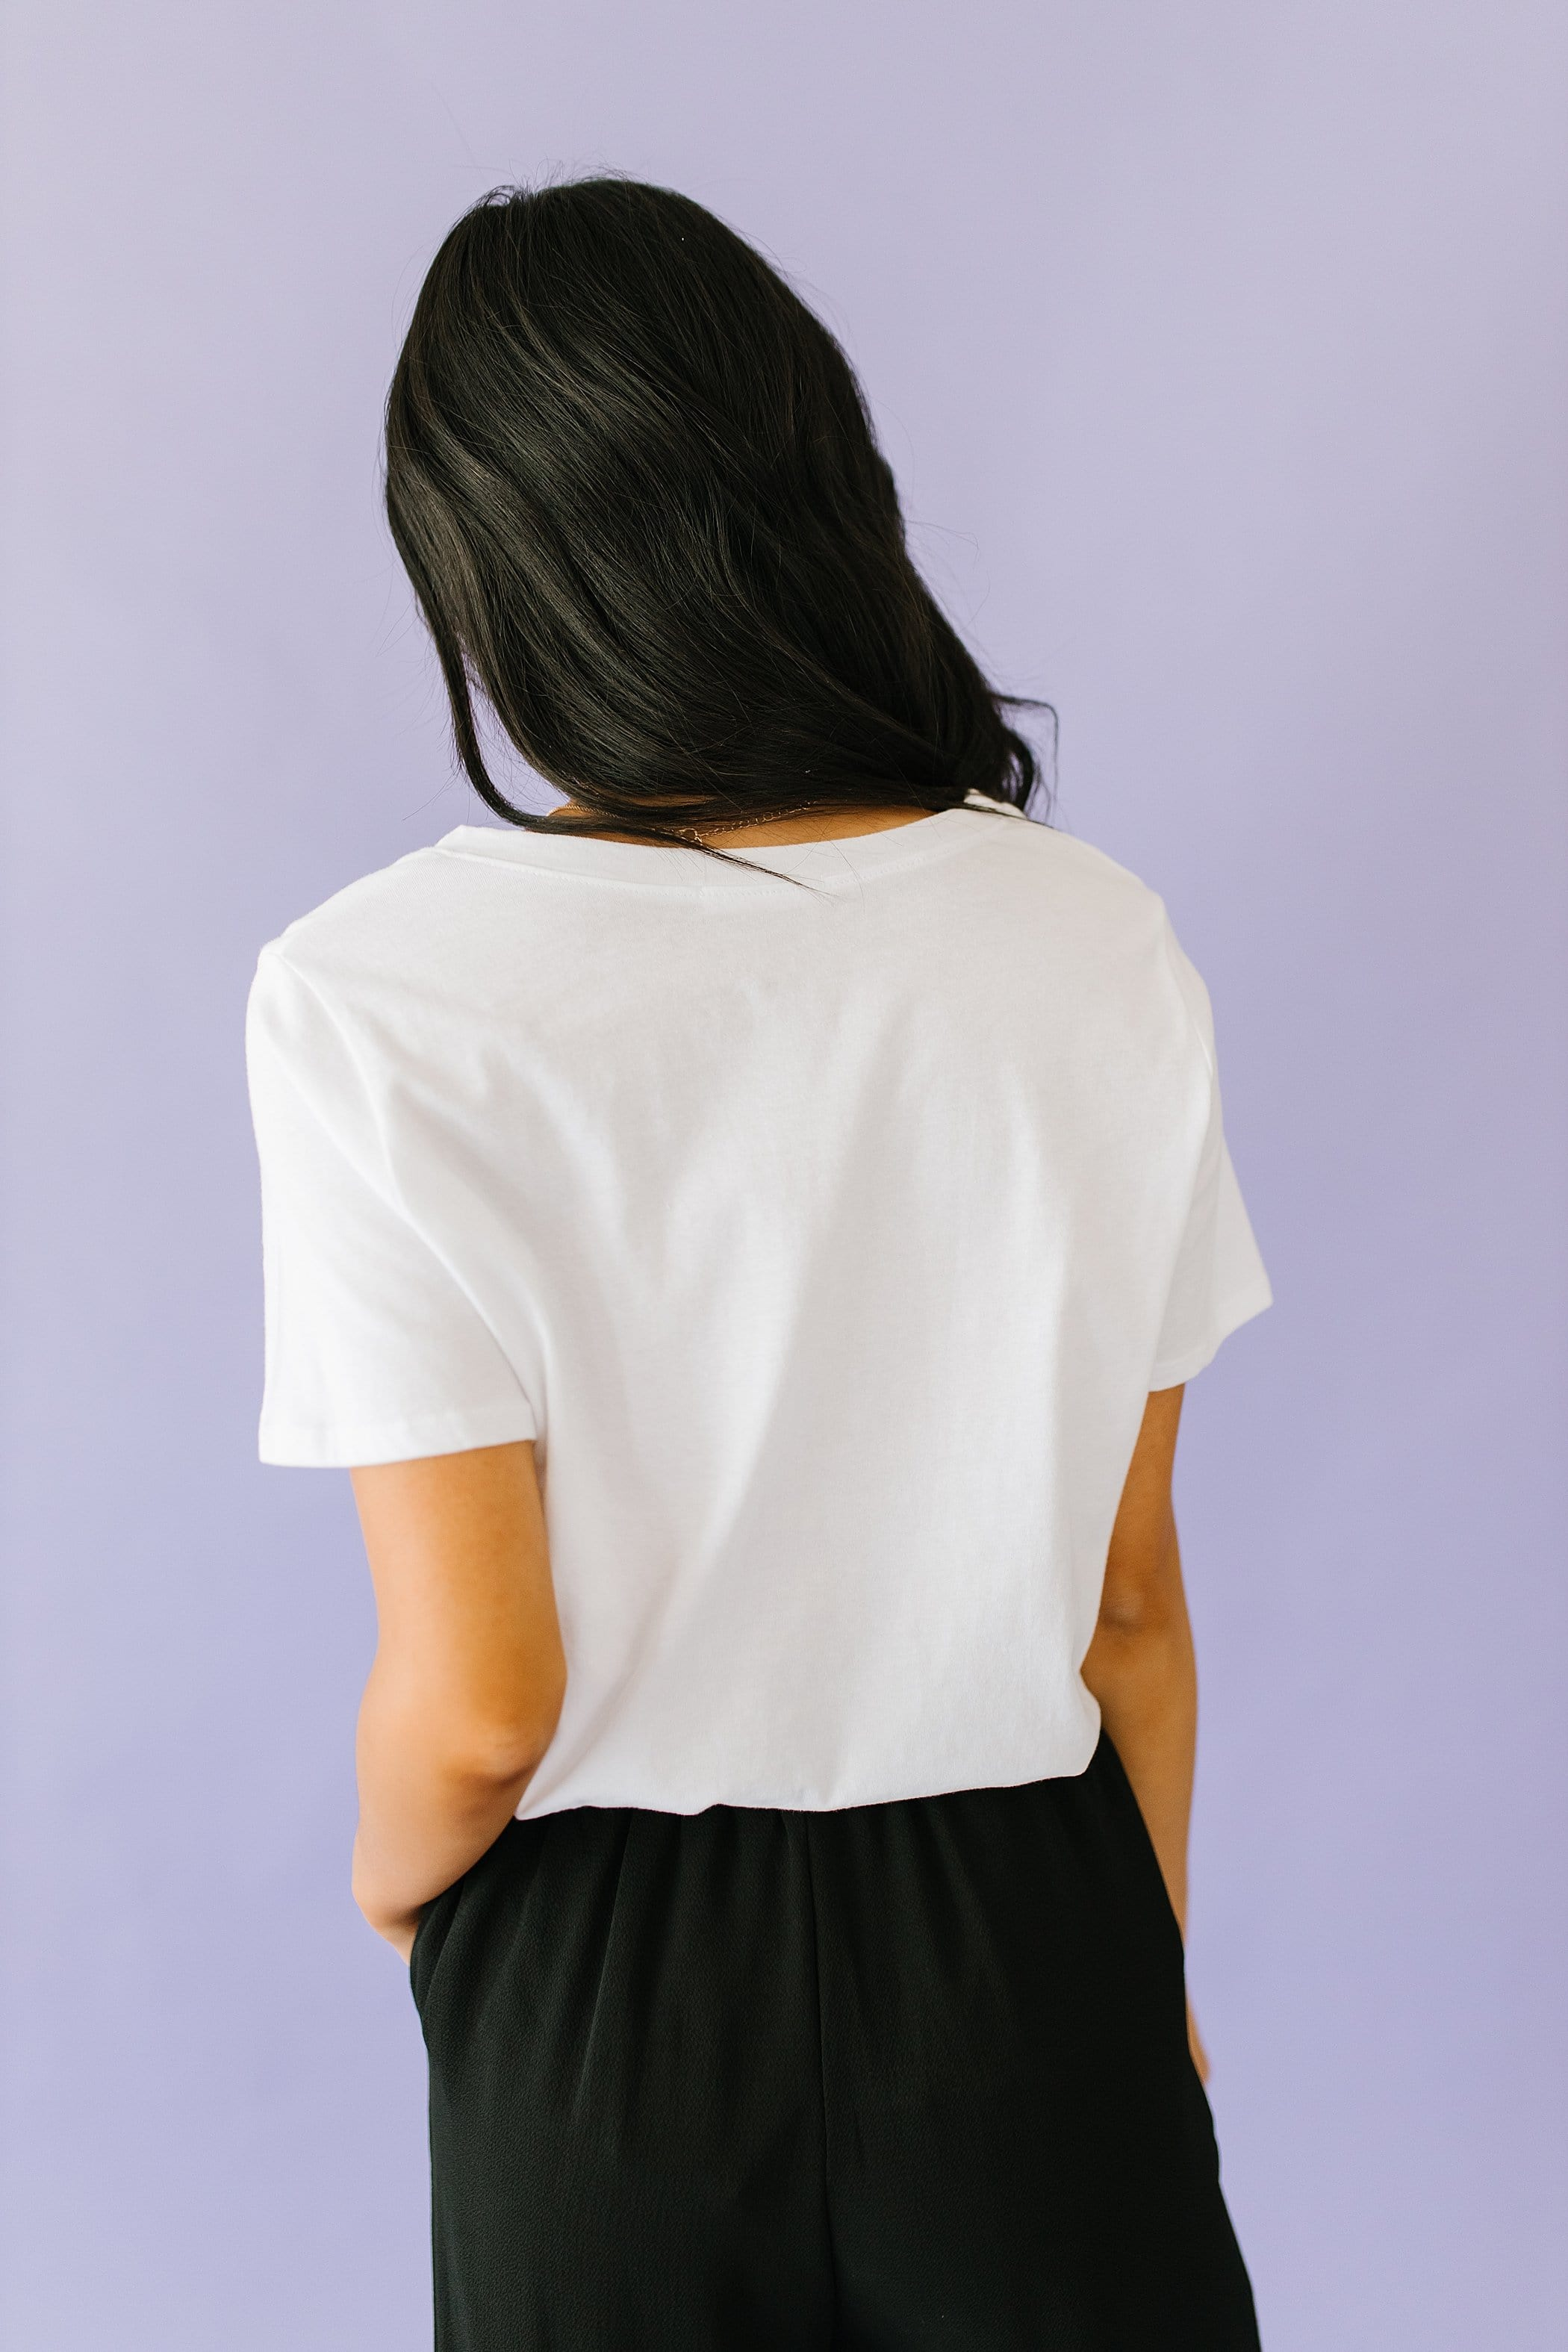 The Being Kind is Free Top in White